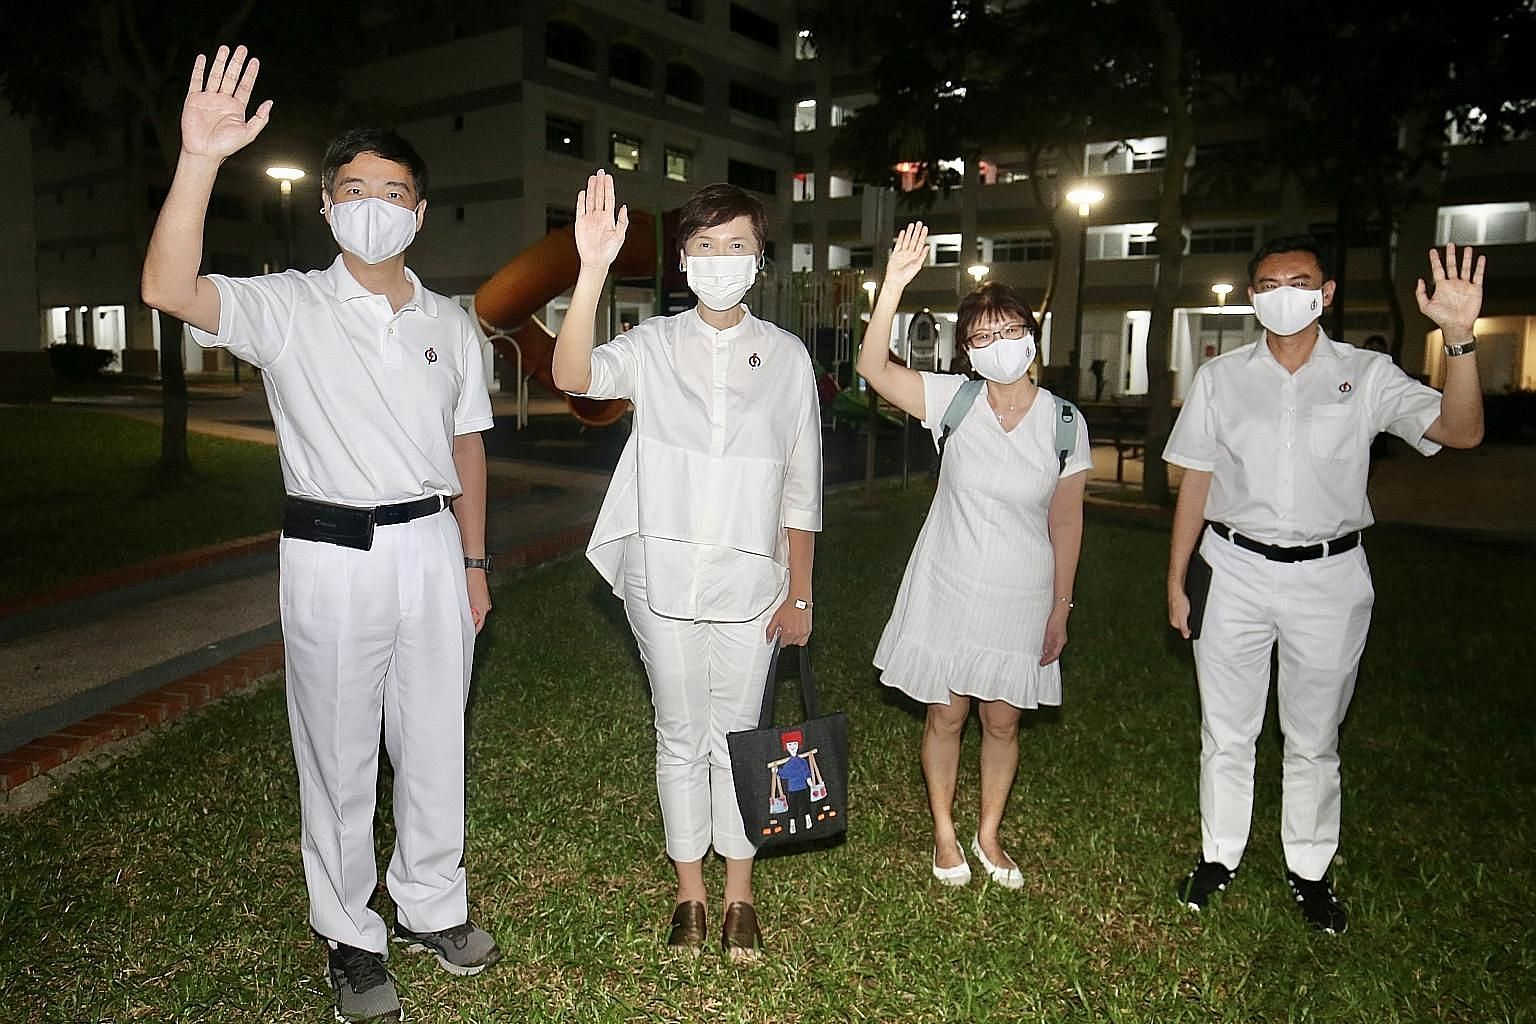 The PAP Jalan Besar GRC team, led by Manpower Minister Josephine Teo (second from left), won 65.37 per cent of the votes against a team from Peoples Voice. The others who stood with her in the group representation constituency are (from left) Mr Heng